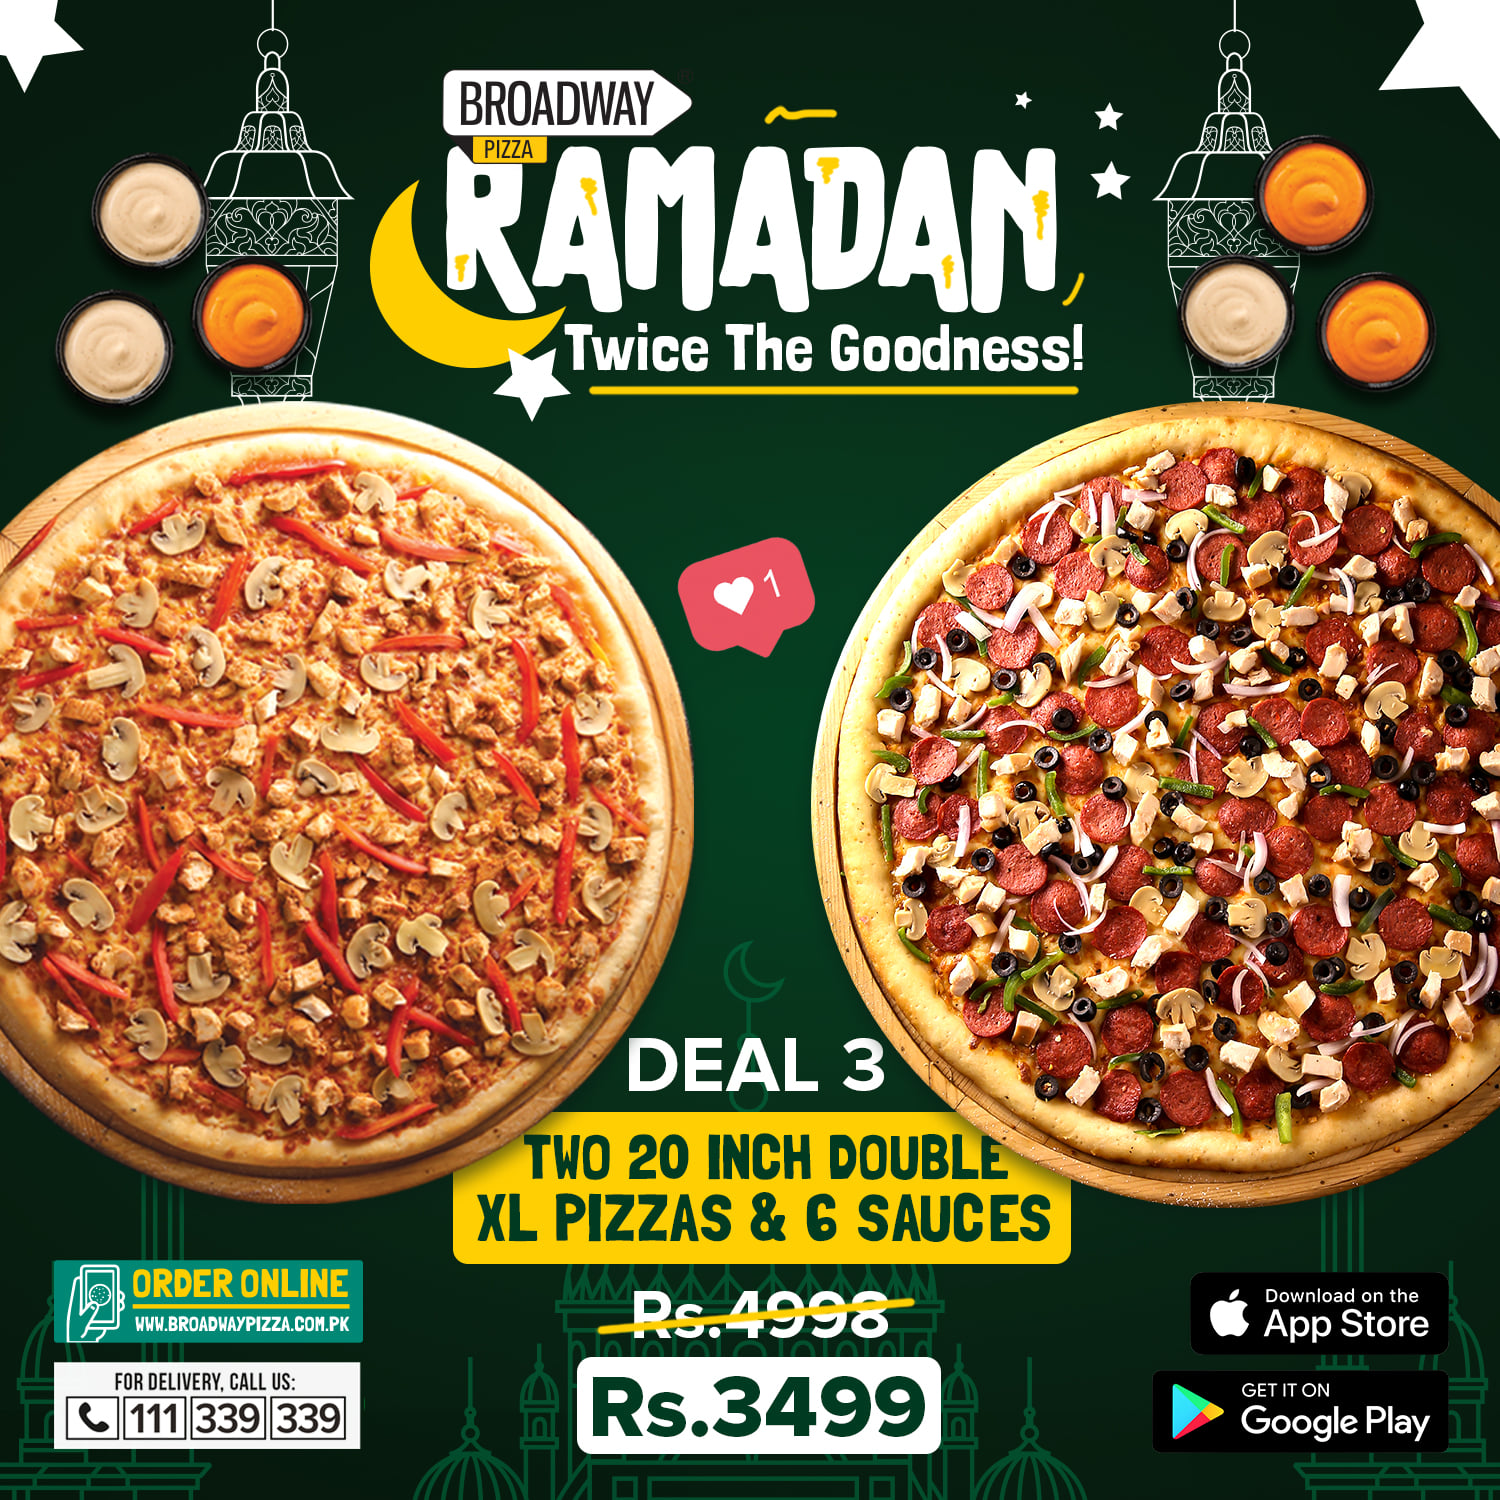 Broadway Pizza - Ramzan Deal